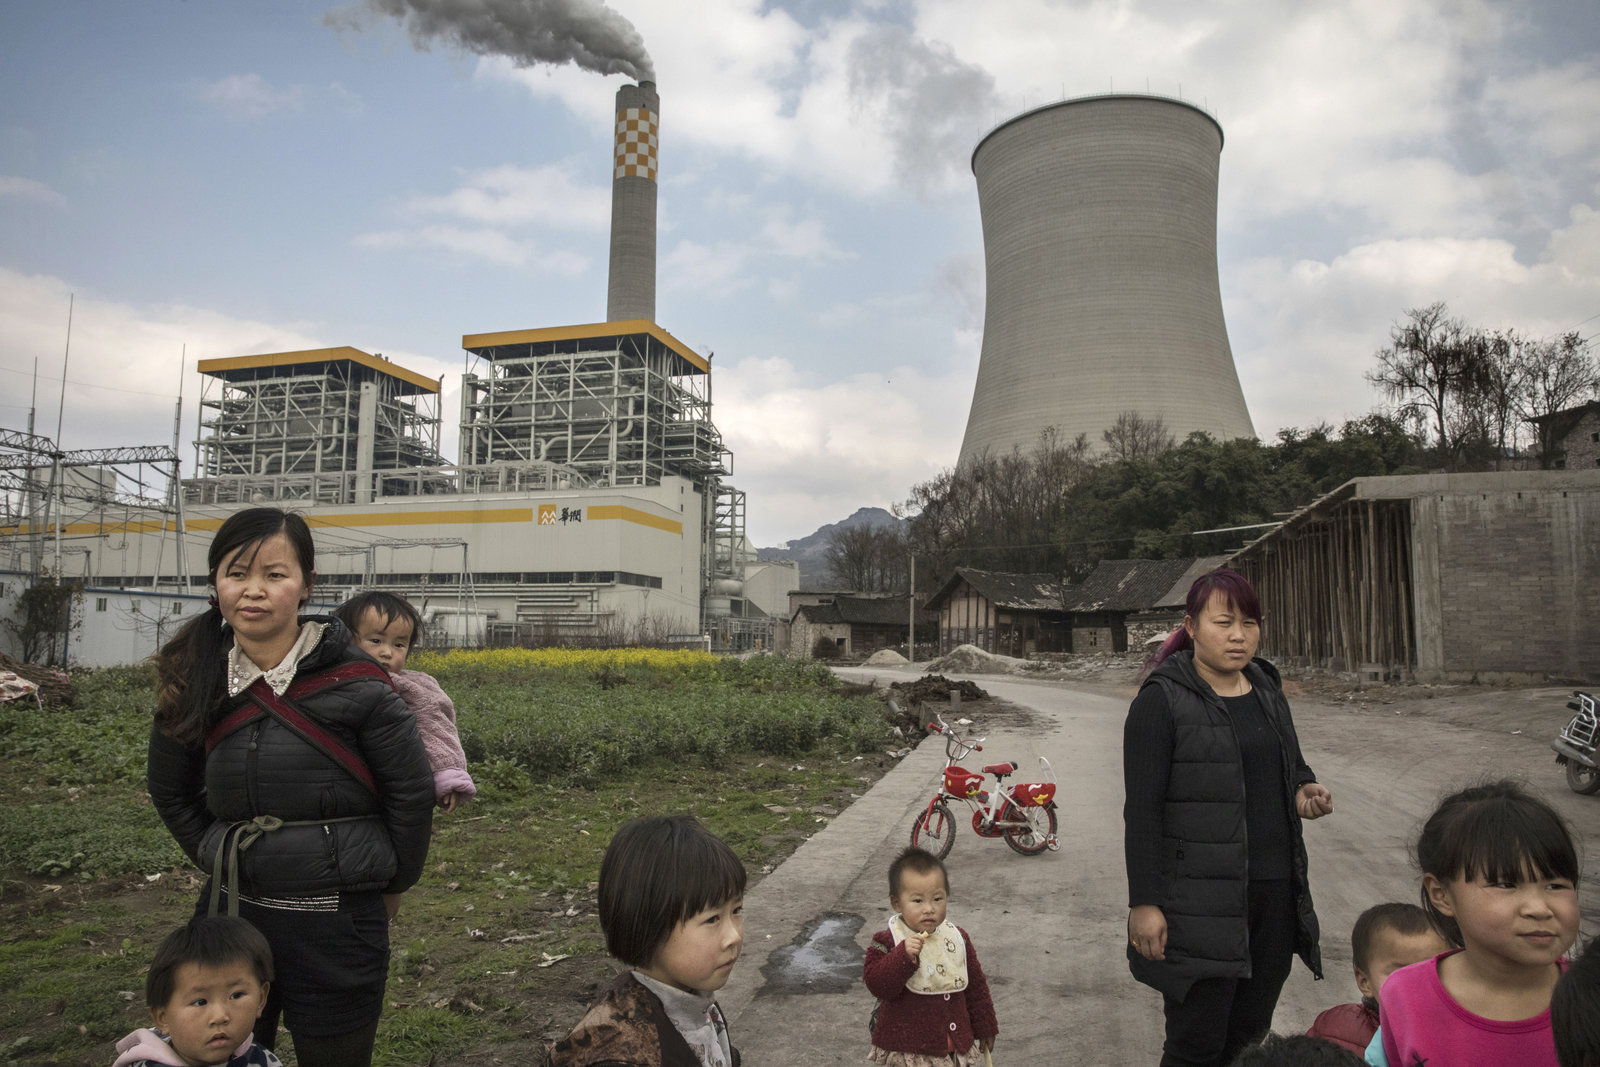 China has leveled off its coal consumption to reduce pollution and climate impacts